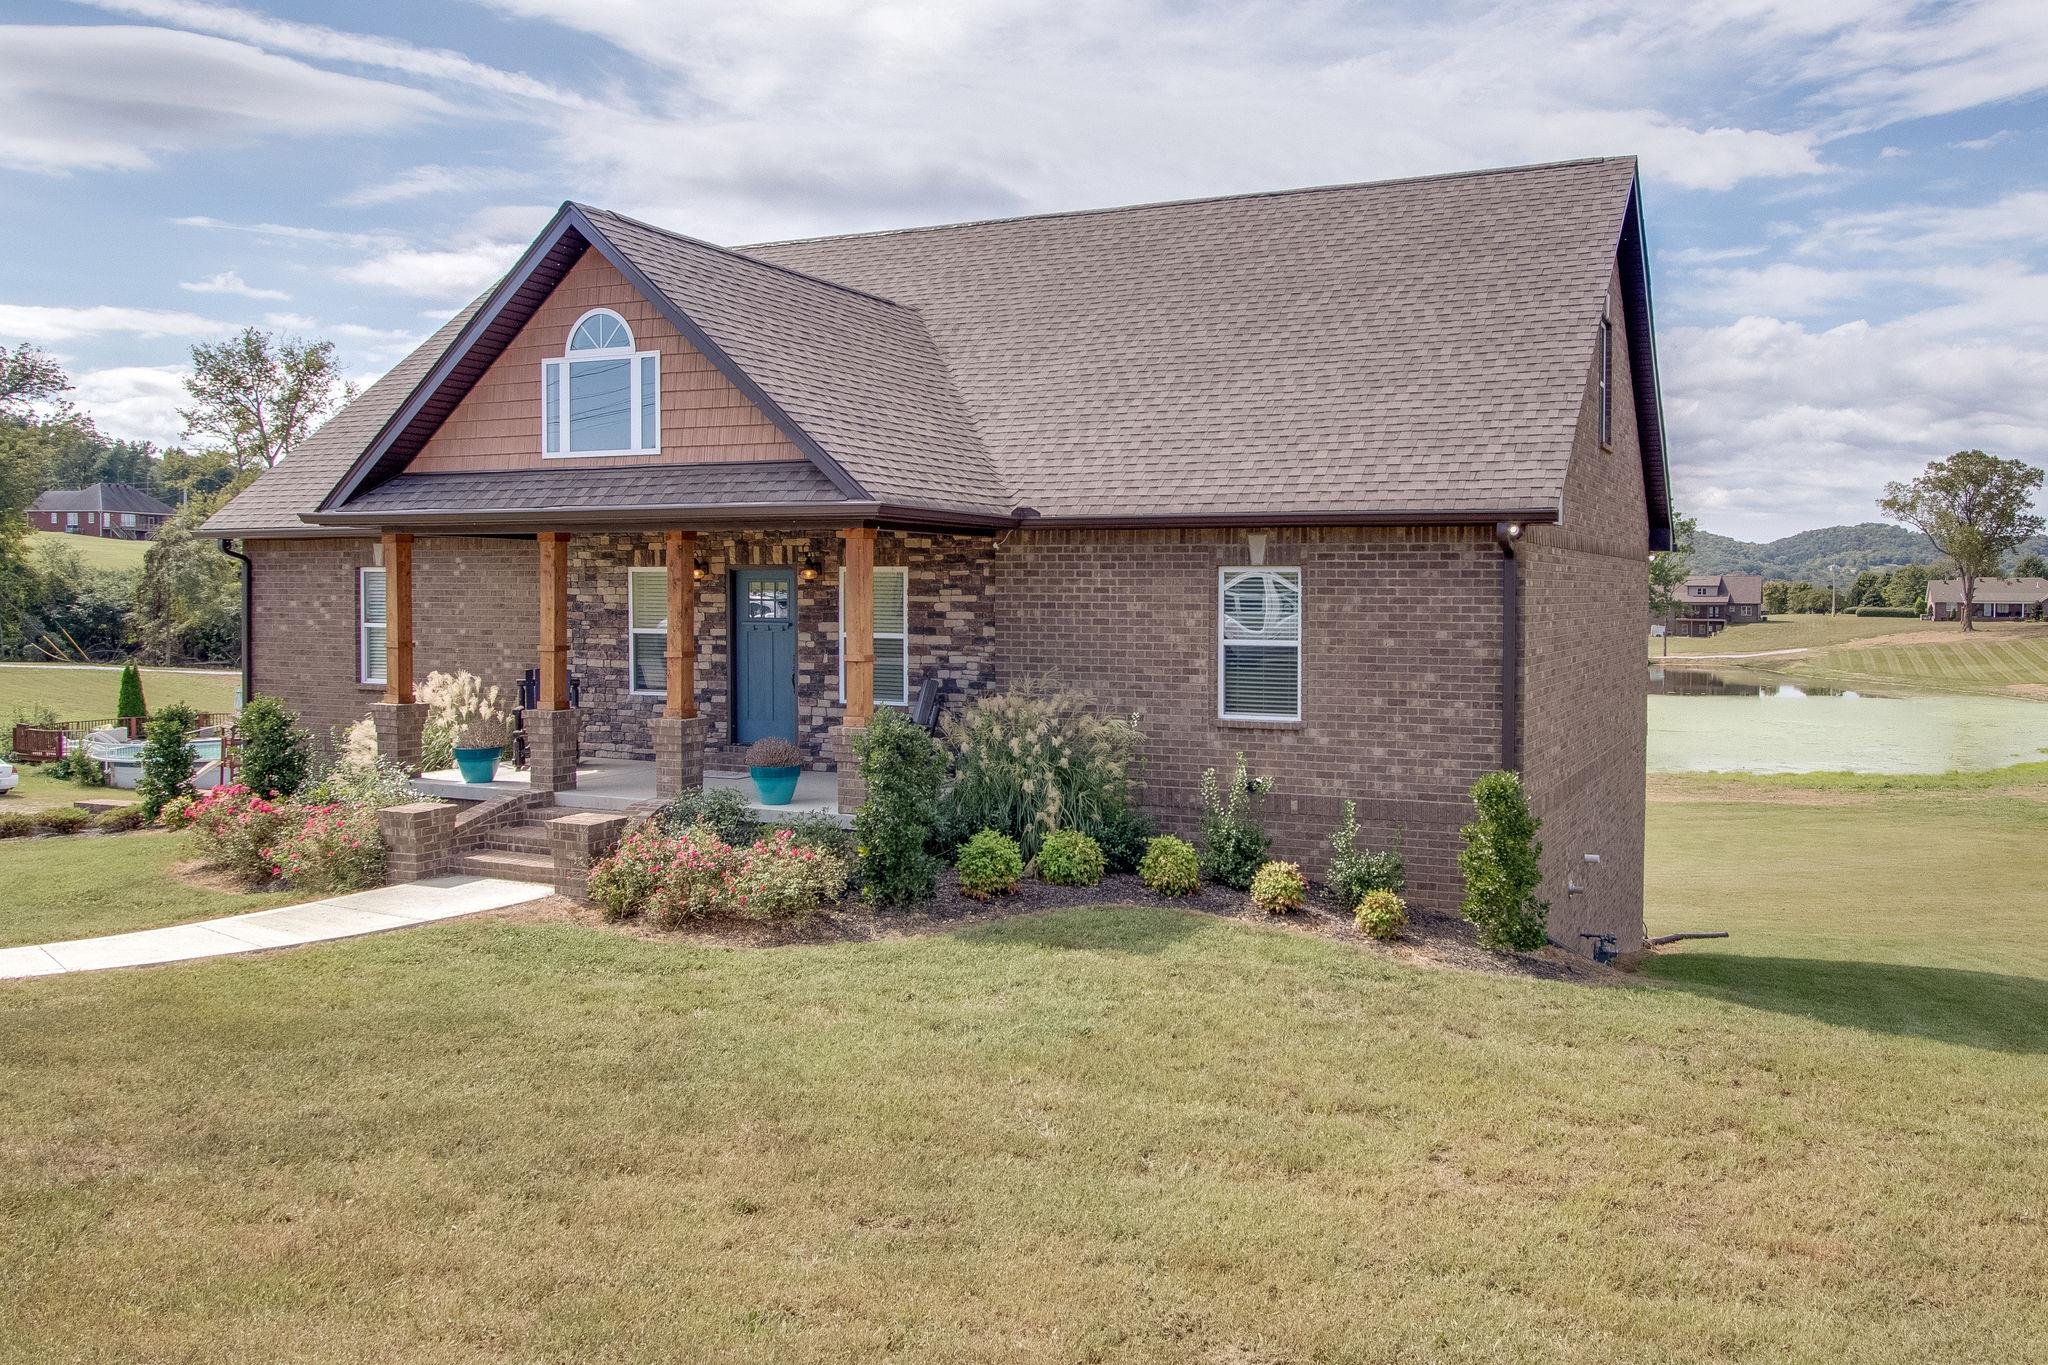 7 Fox Run Ln, Carthage, TN 37030 - Carthage, TN real estate listing